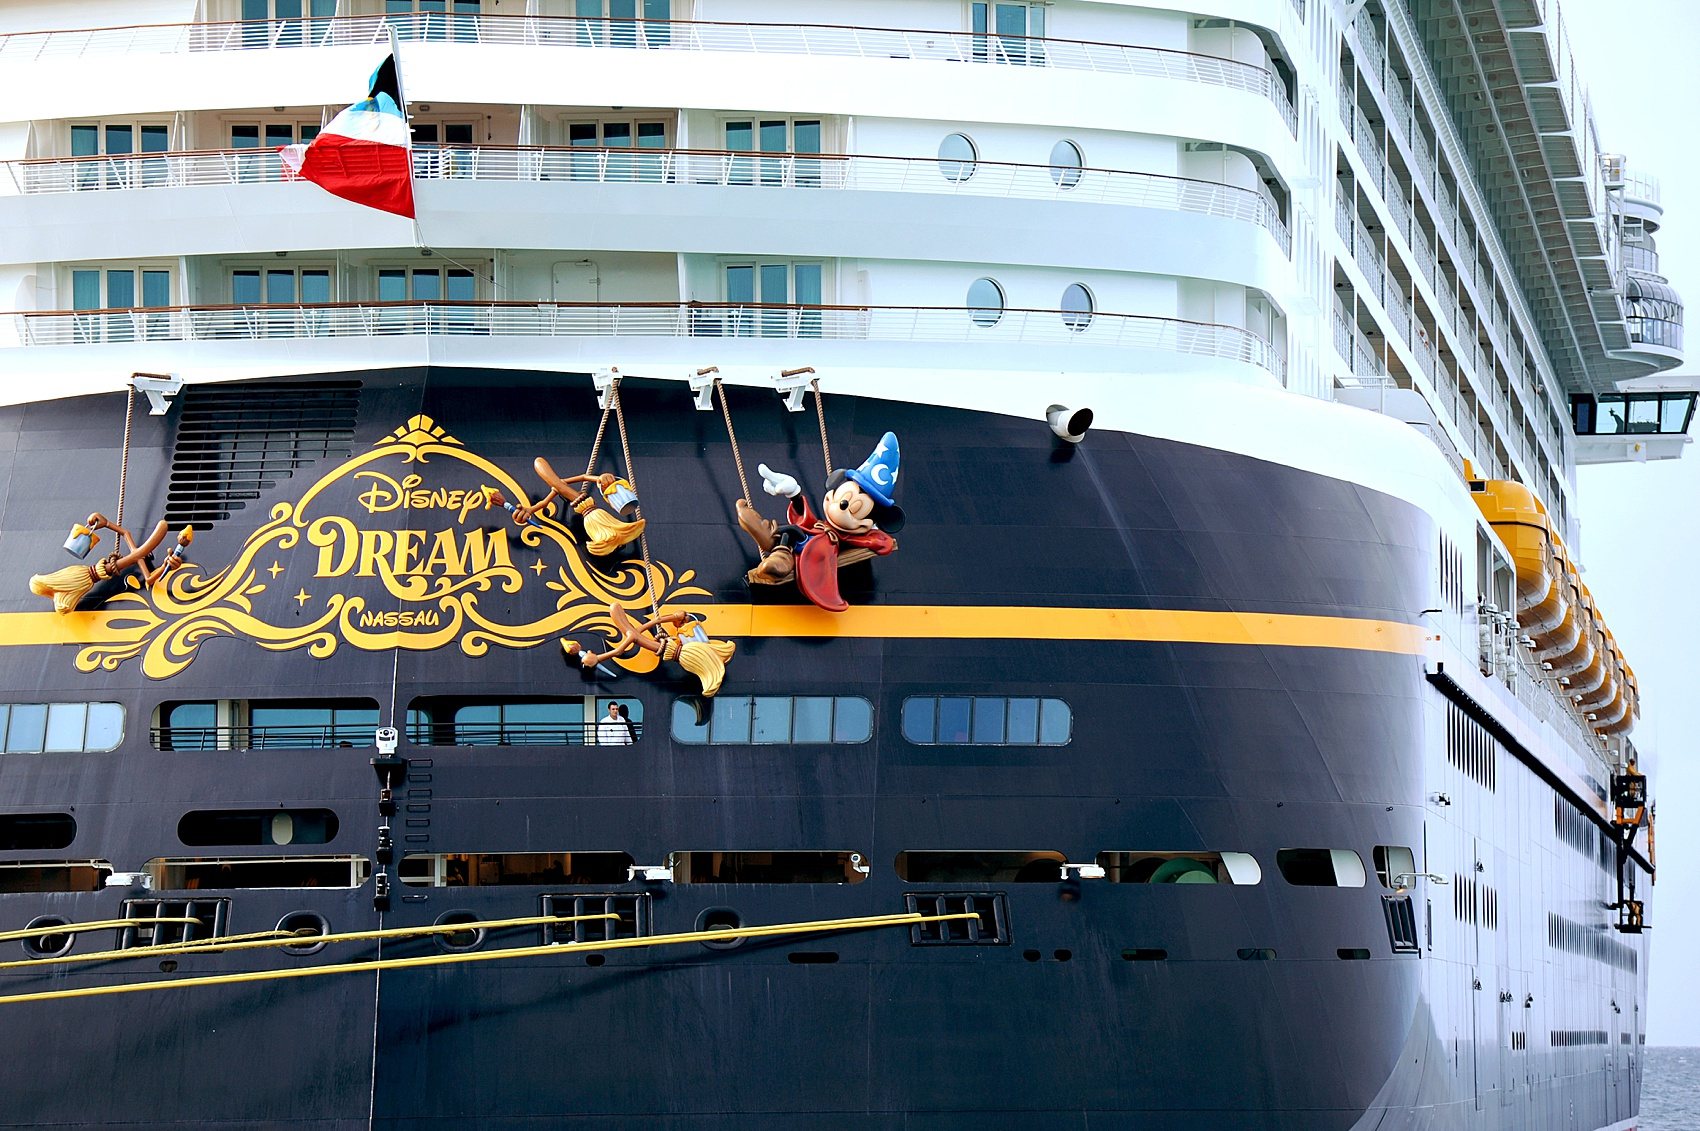 Information and ideas about bringing your own Disney Cruise Line wedding photographer for a DCL Dream, Fantasy, Magic or Wonder celebration. Mikkel Paige Photography explains the pros and cons of each. | Disney Wedding Ideas | #mikkelpaige #disneycruiseline #disneybride #disneyweddingideas #DisneyWeddingPhotography #DisneyWedding